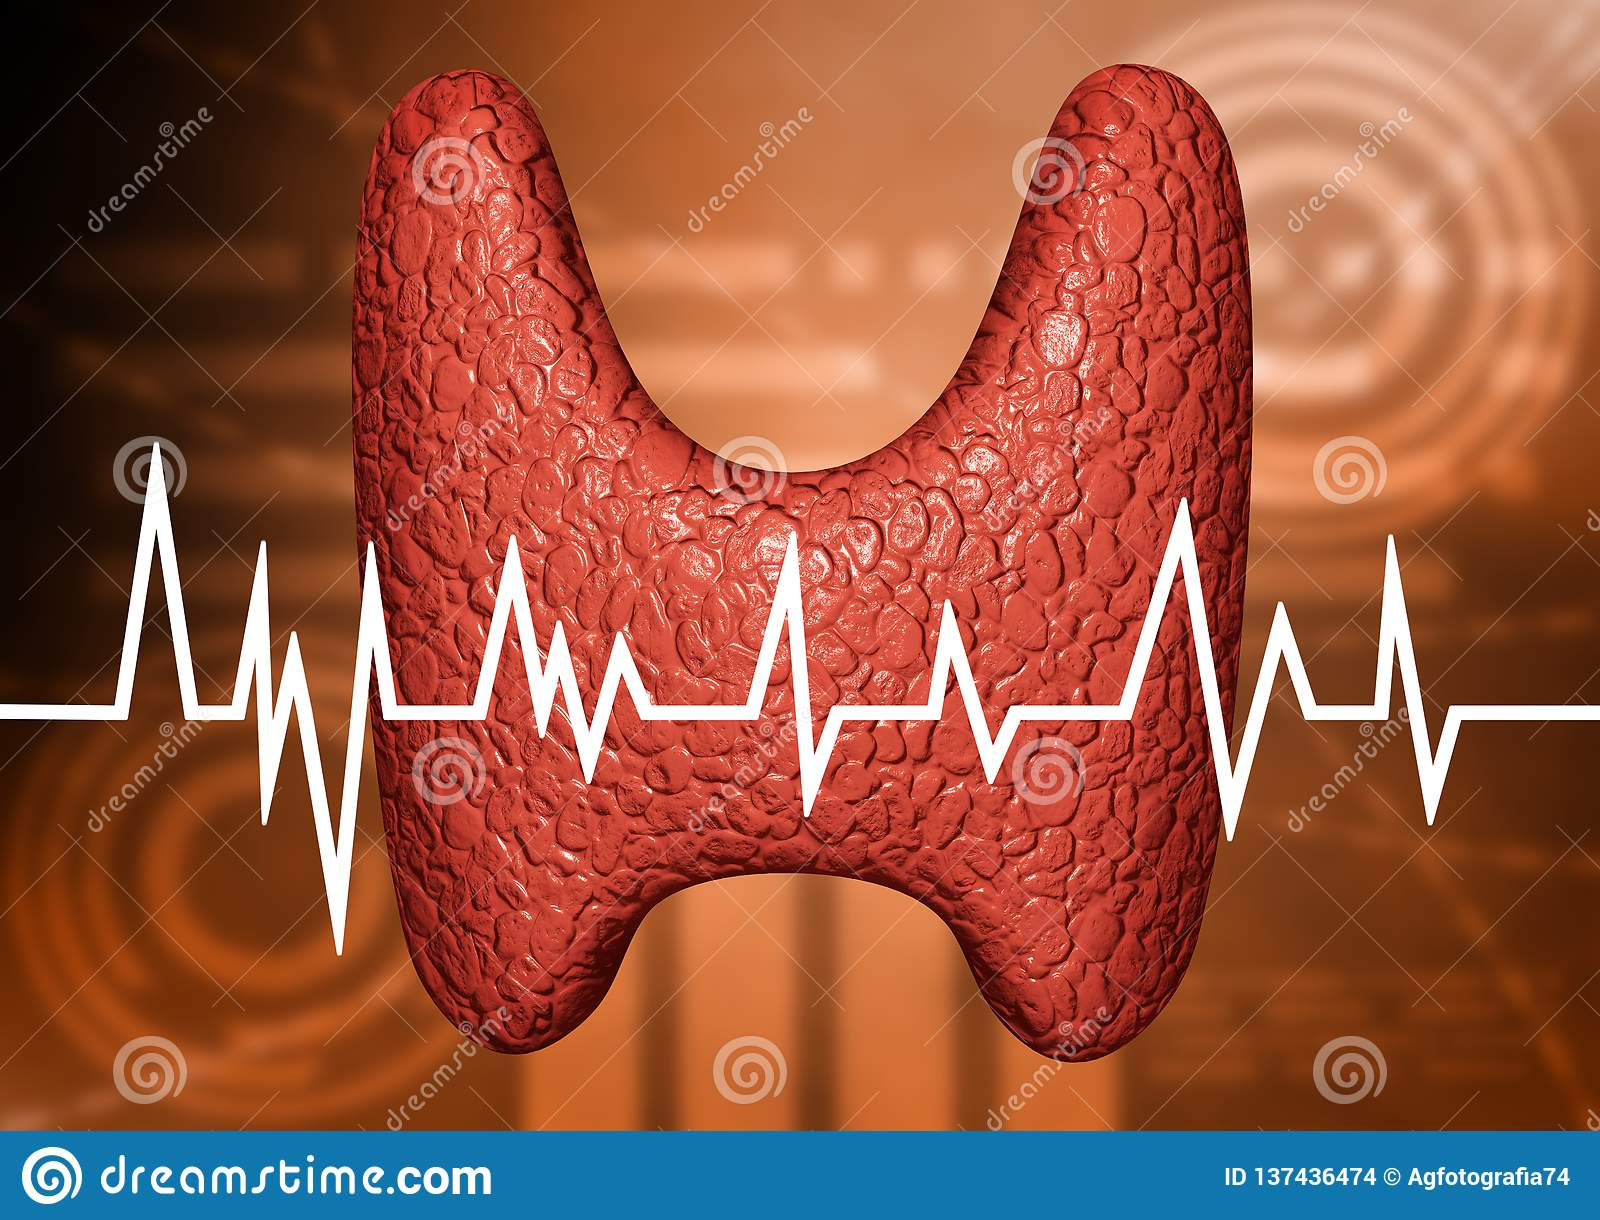 Thyroid Glandyzed In Clinical Examination Of The